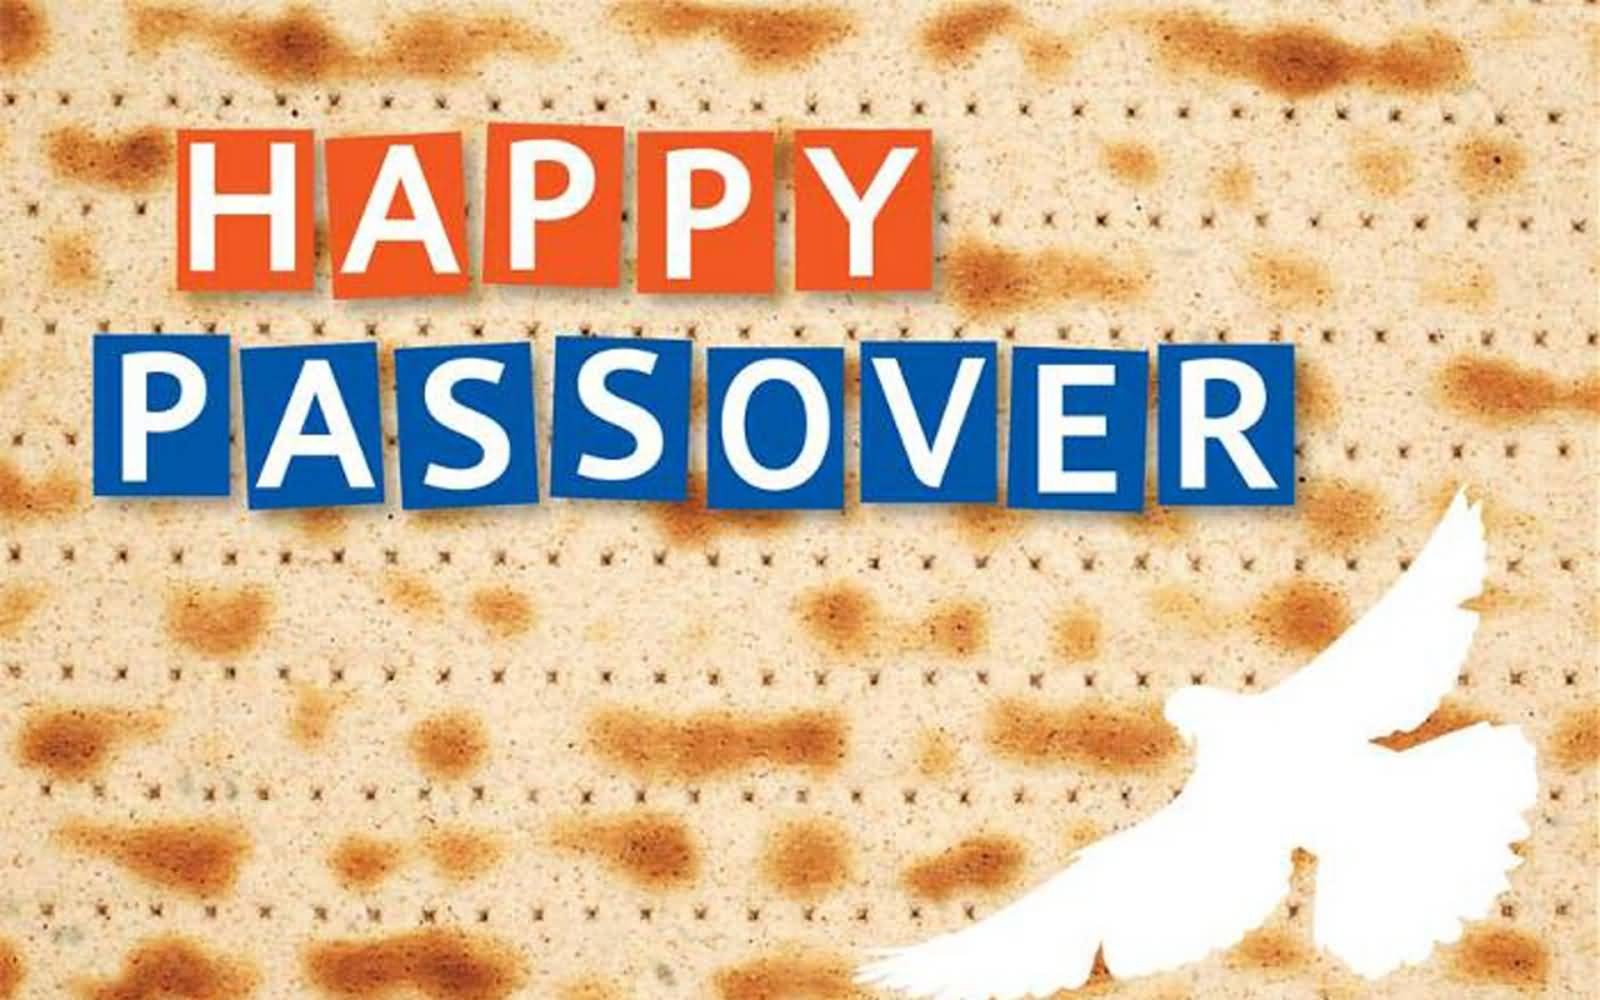 Happy Passover Wishes Images